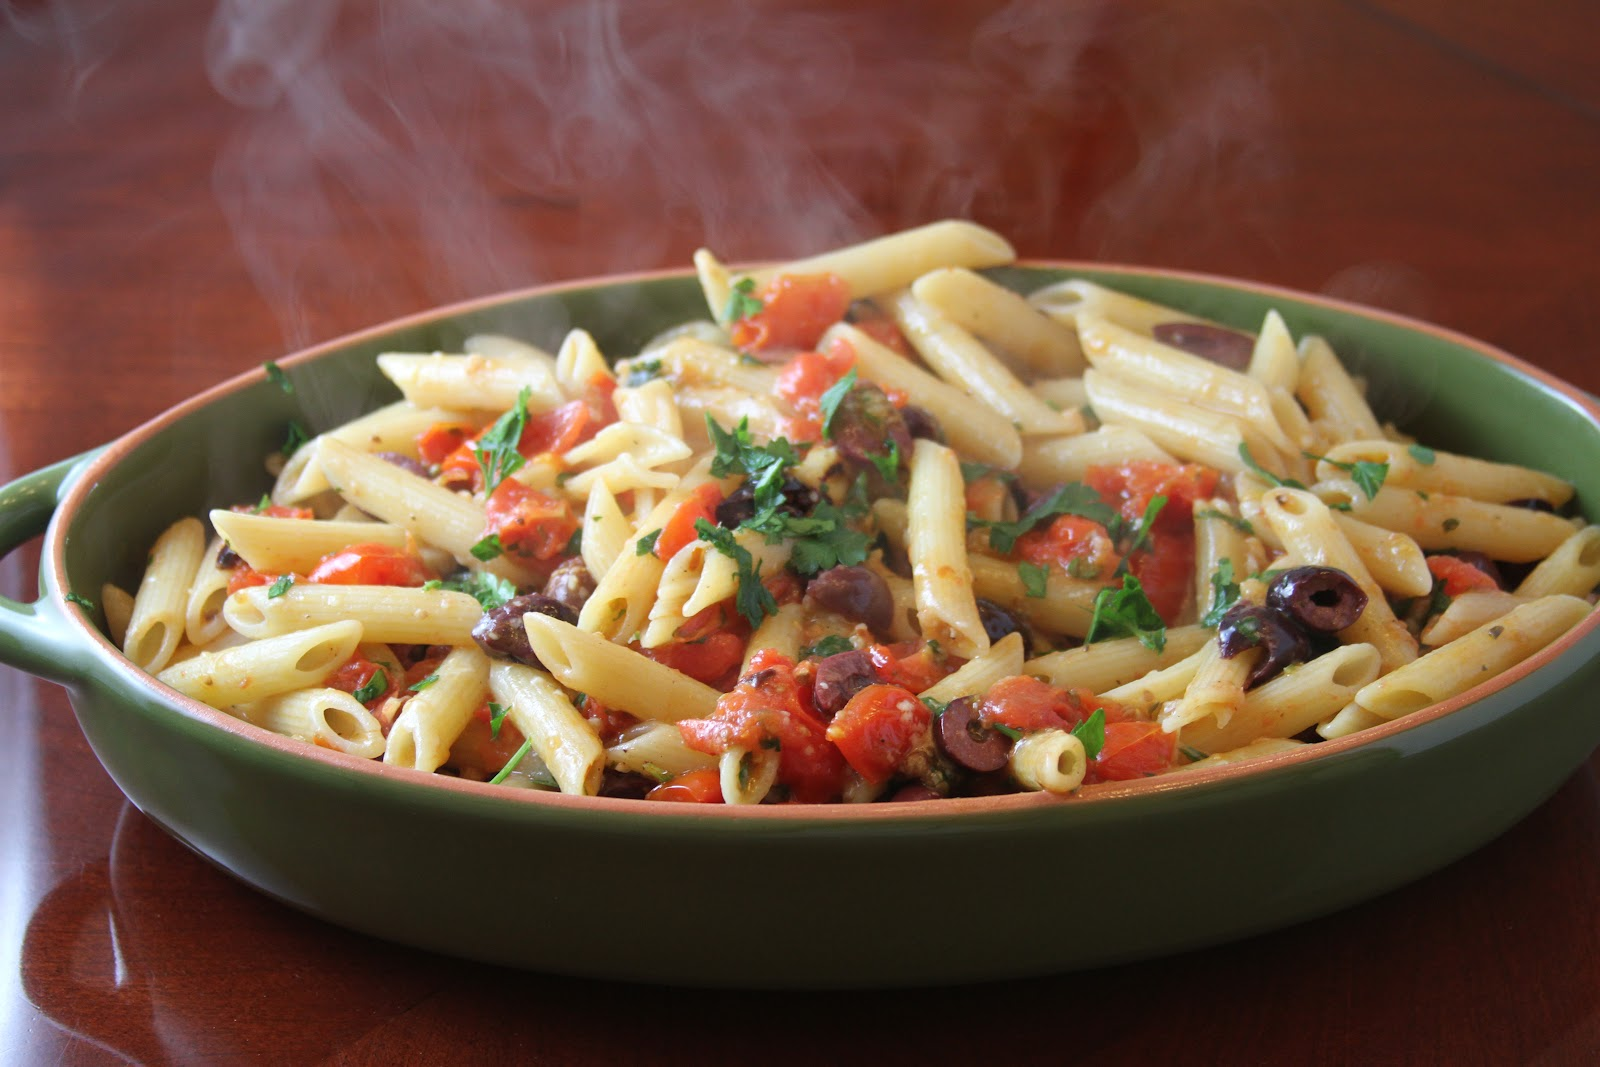 Charlotte's Fan-Fare: Tomato and Olive Penne